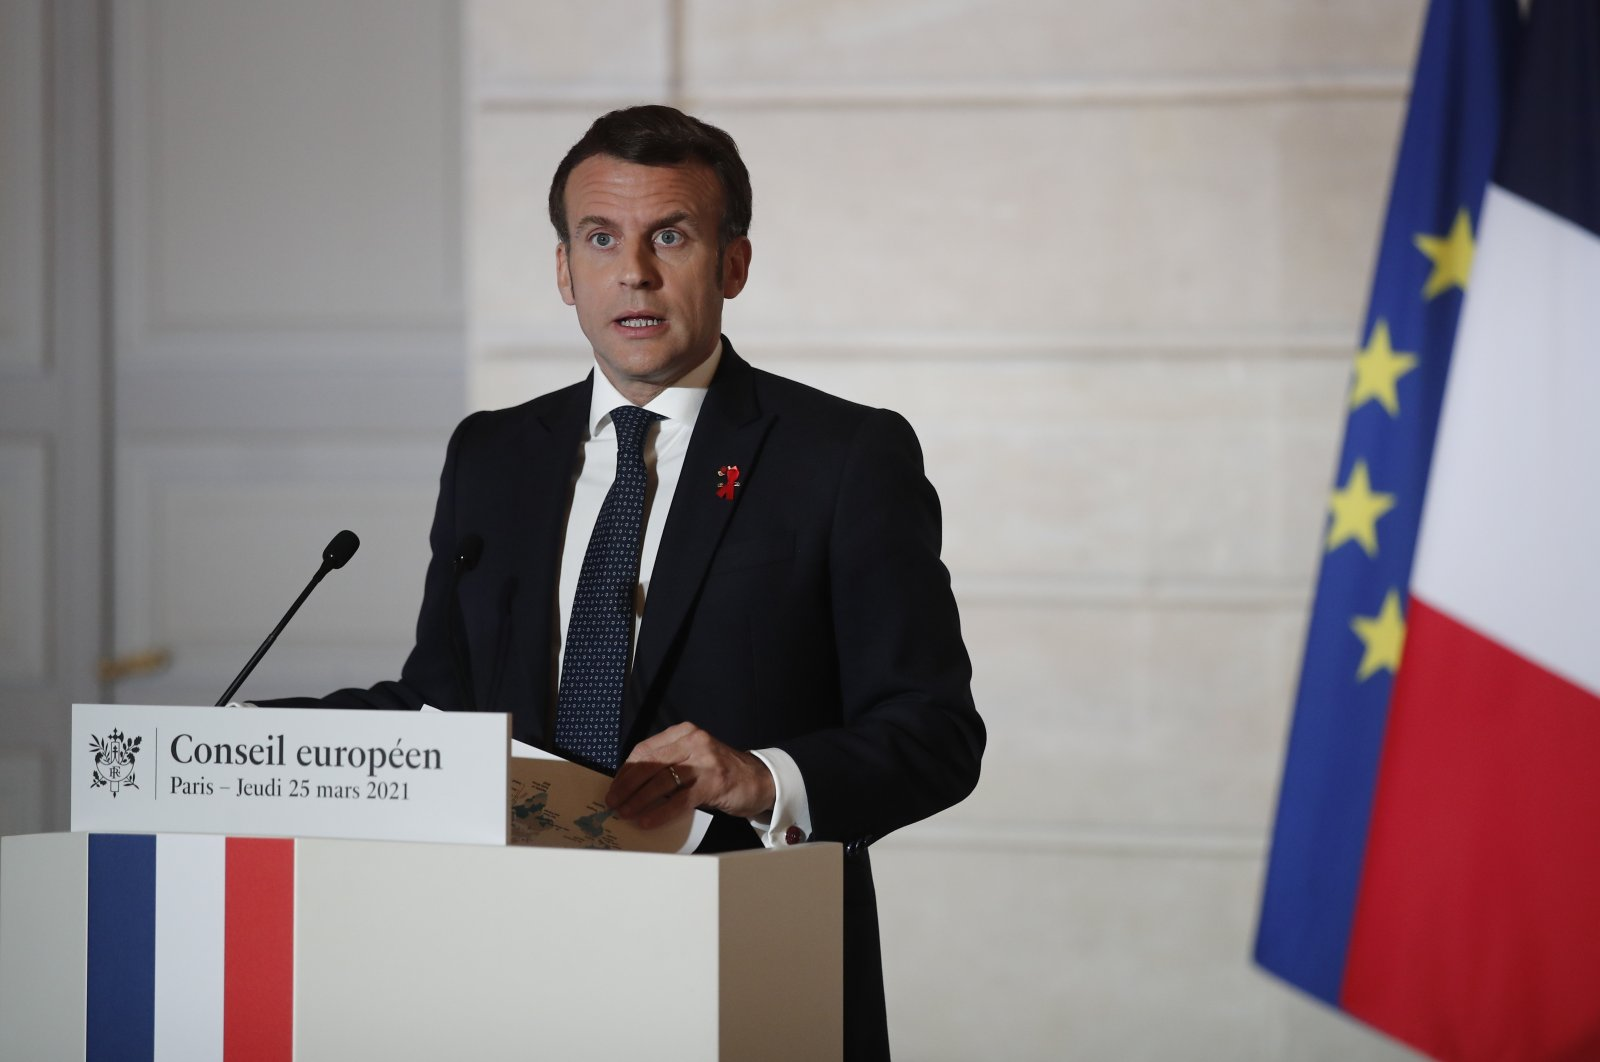 French President Emmanuel Macron speaks during a press conference after a European Council summit held over videoconference at the Elysee Palace in Paris, France, March 25, 2021.  (EPA Photo)